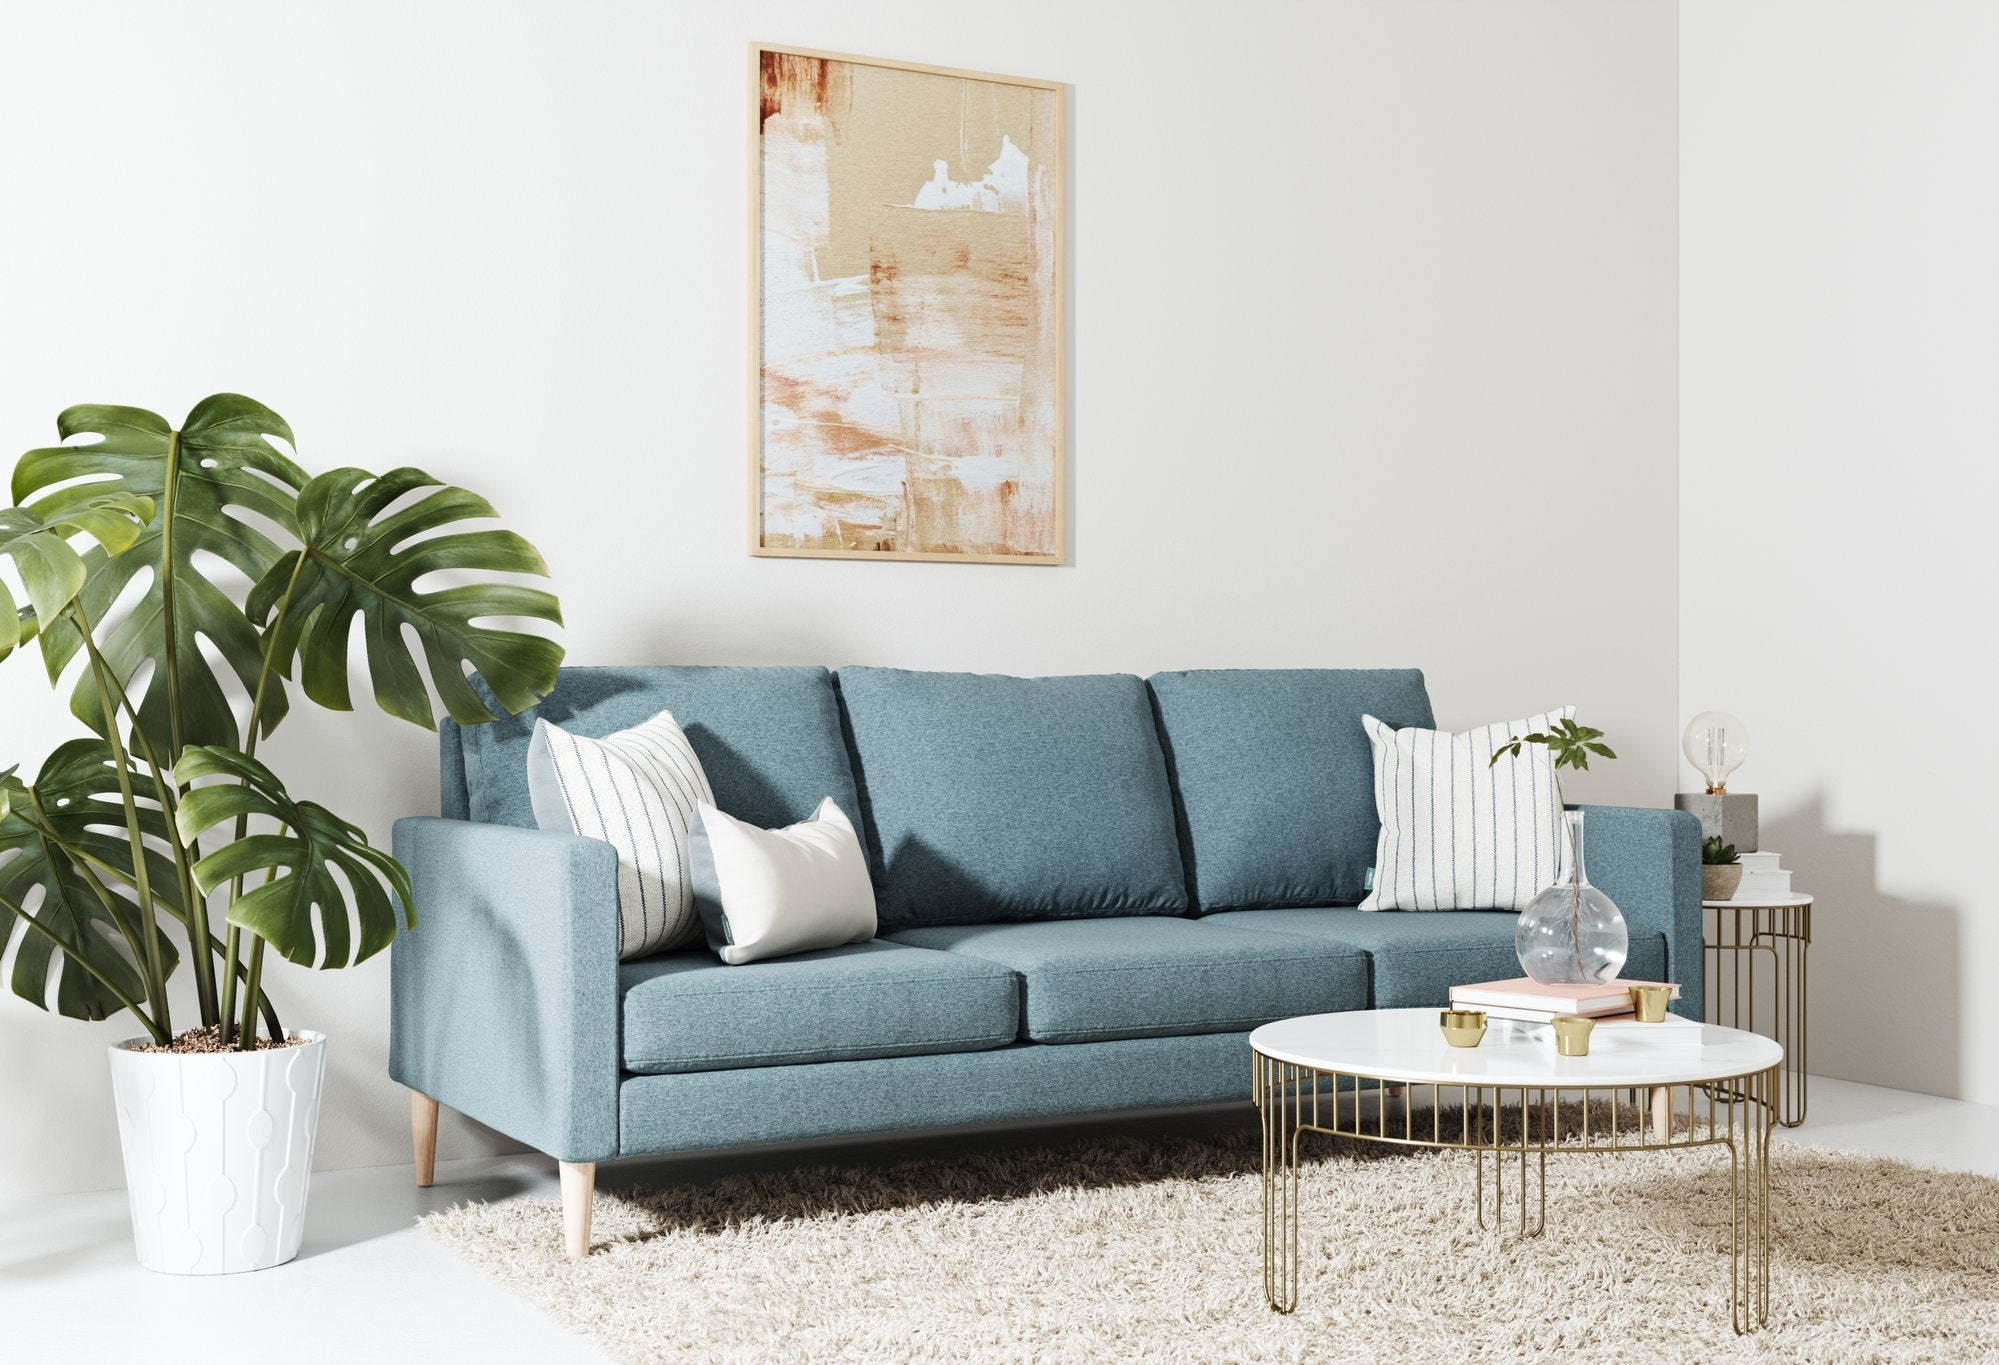 PDP_Lifestyle_Images_-_Sofa_-_Meridian_Blue_Maple_2000x